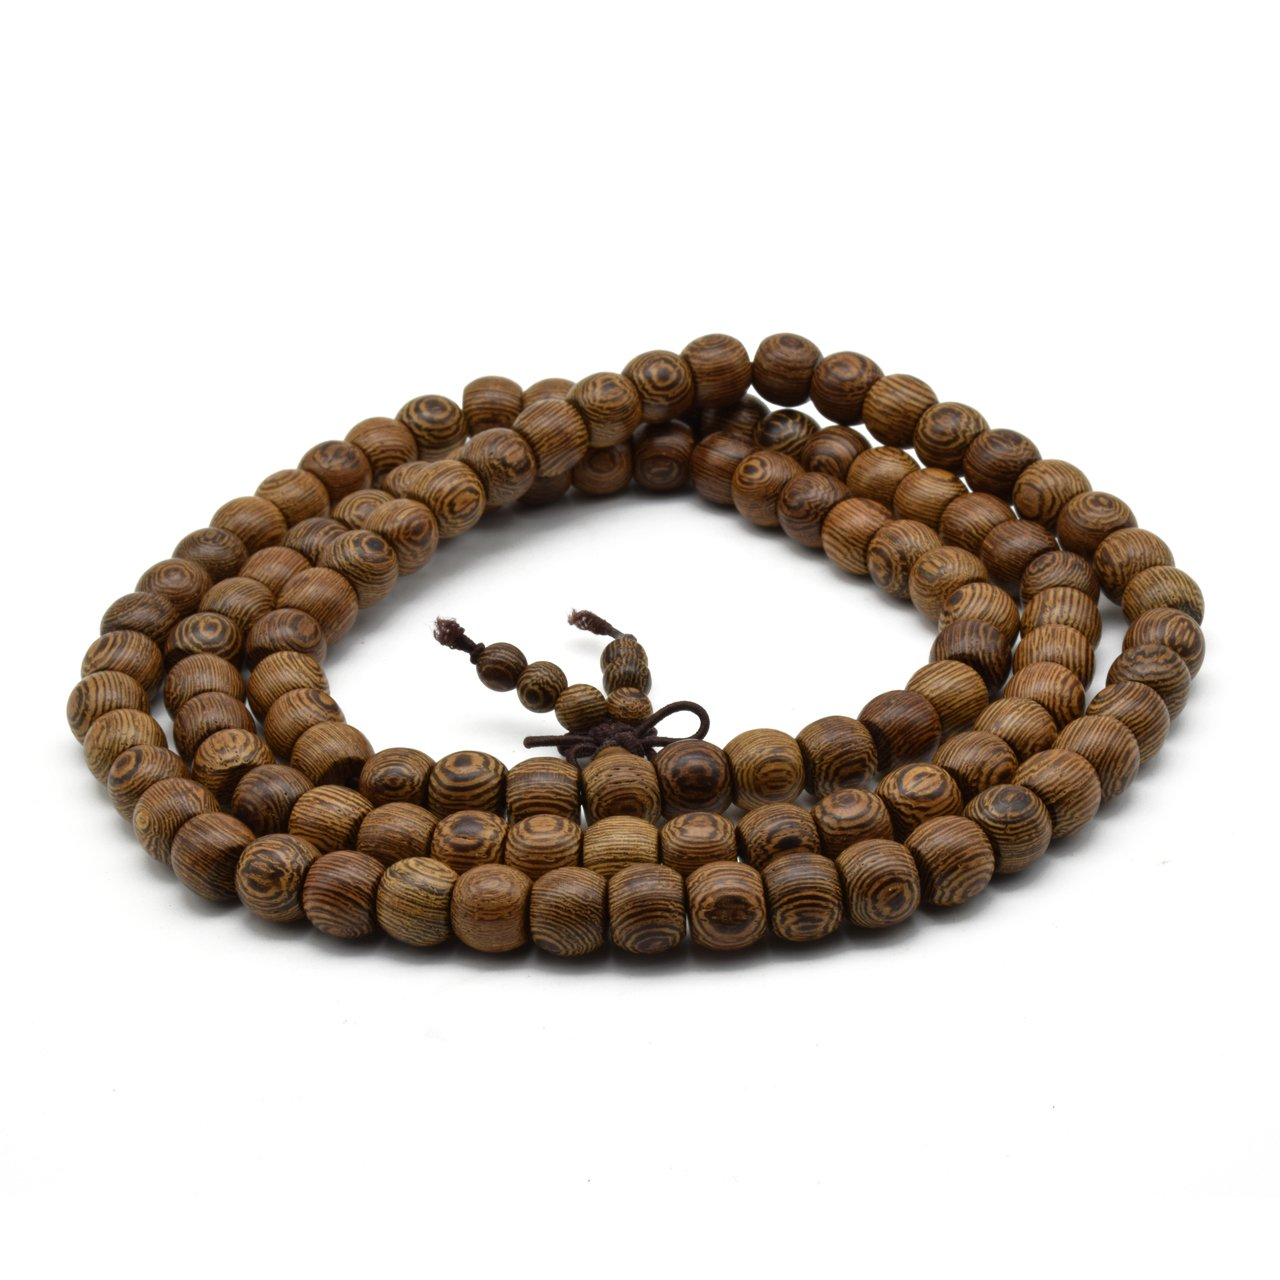 Zen Dear Unisex Natural Wenge Mala Prayer Beads Necklace Bracelet Meditation Buddhist Rosary Mala Beads (8mm X 10mm 108 Beads)